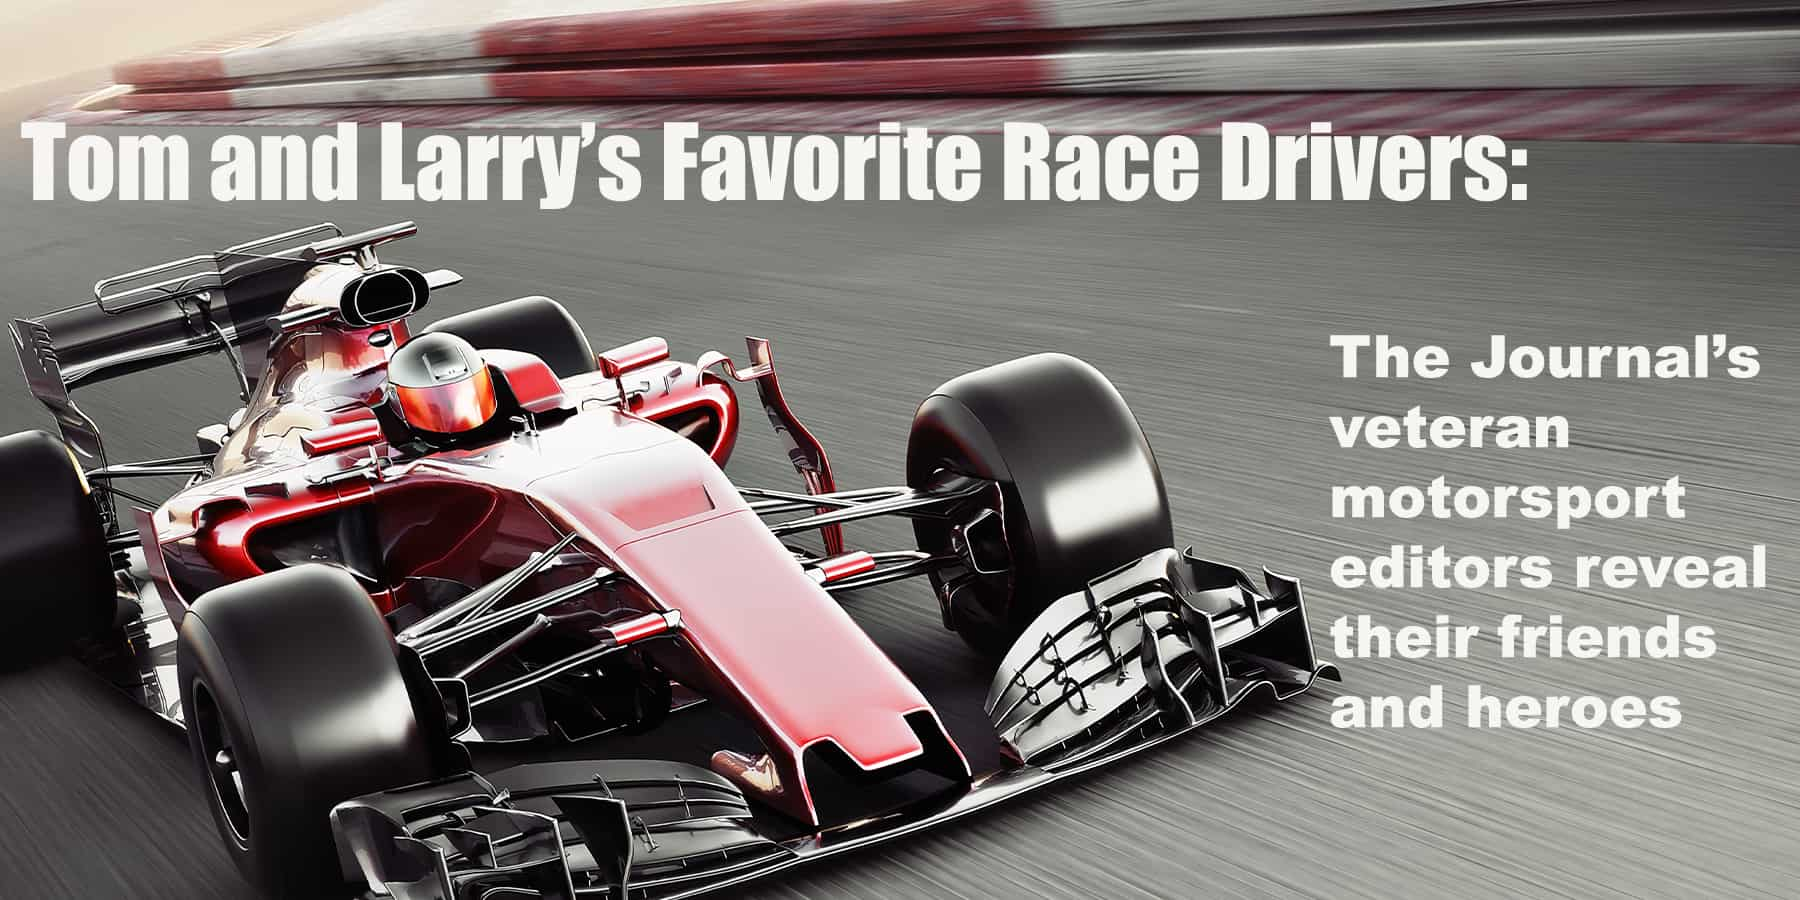 Tom and Larry pick their favorite racers